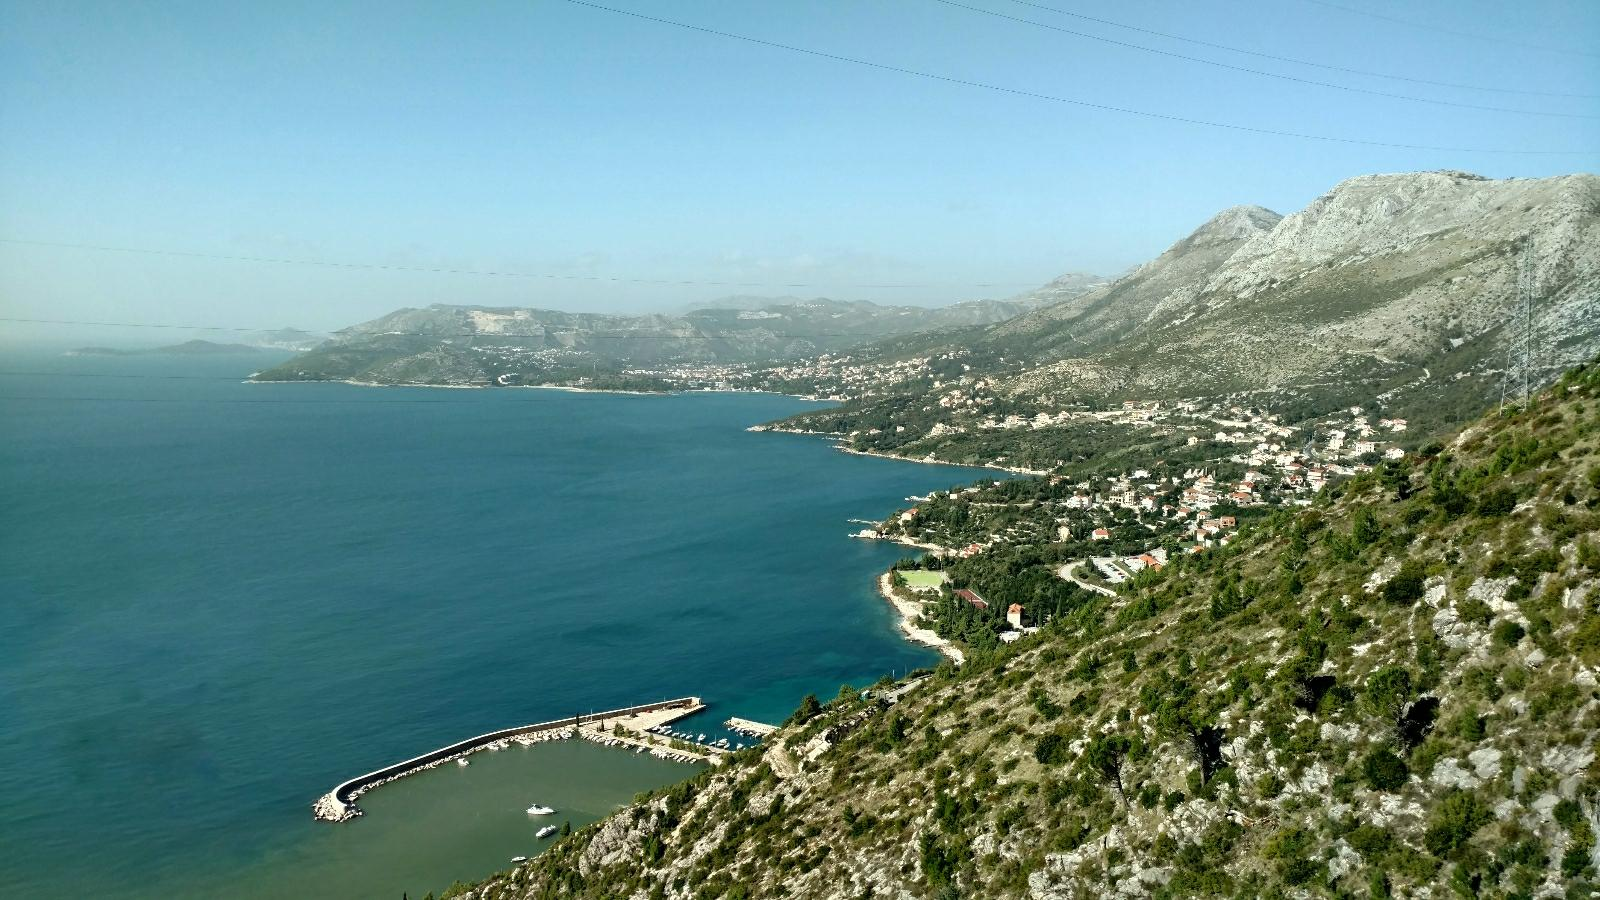 Just above Cavtat